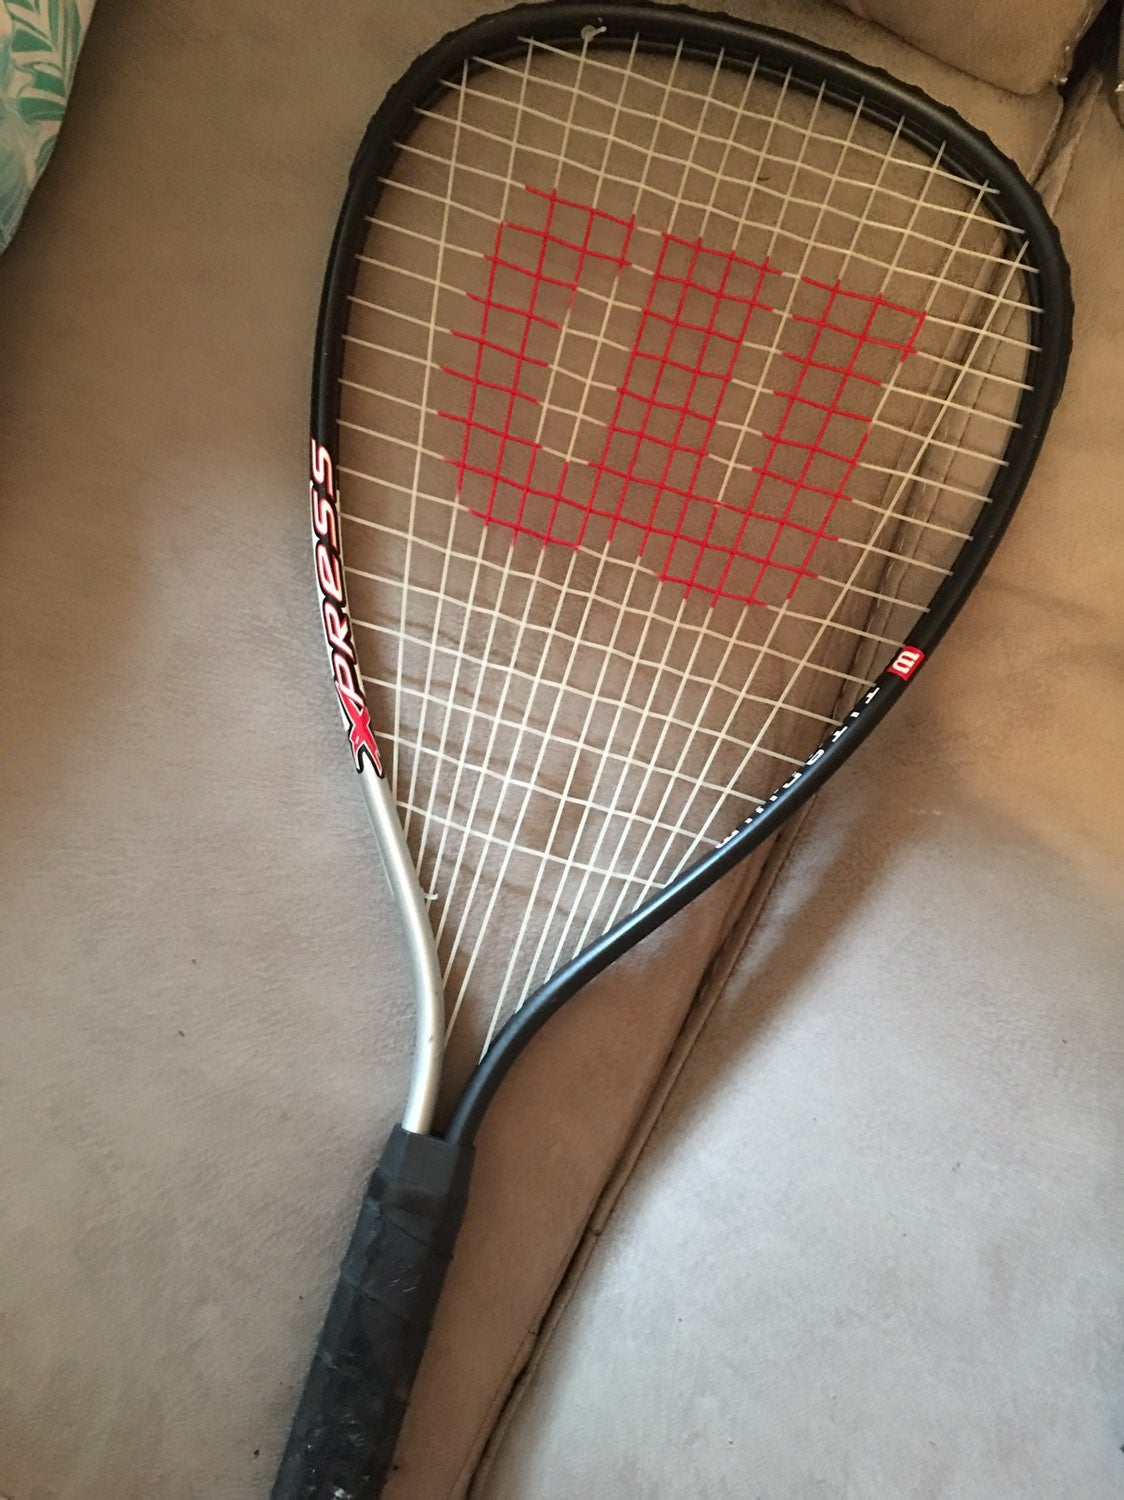 Racket Ball and Case